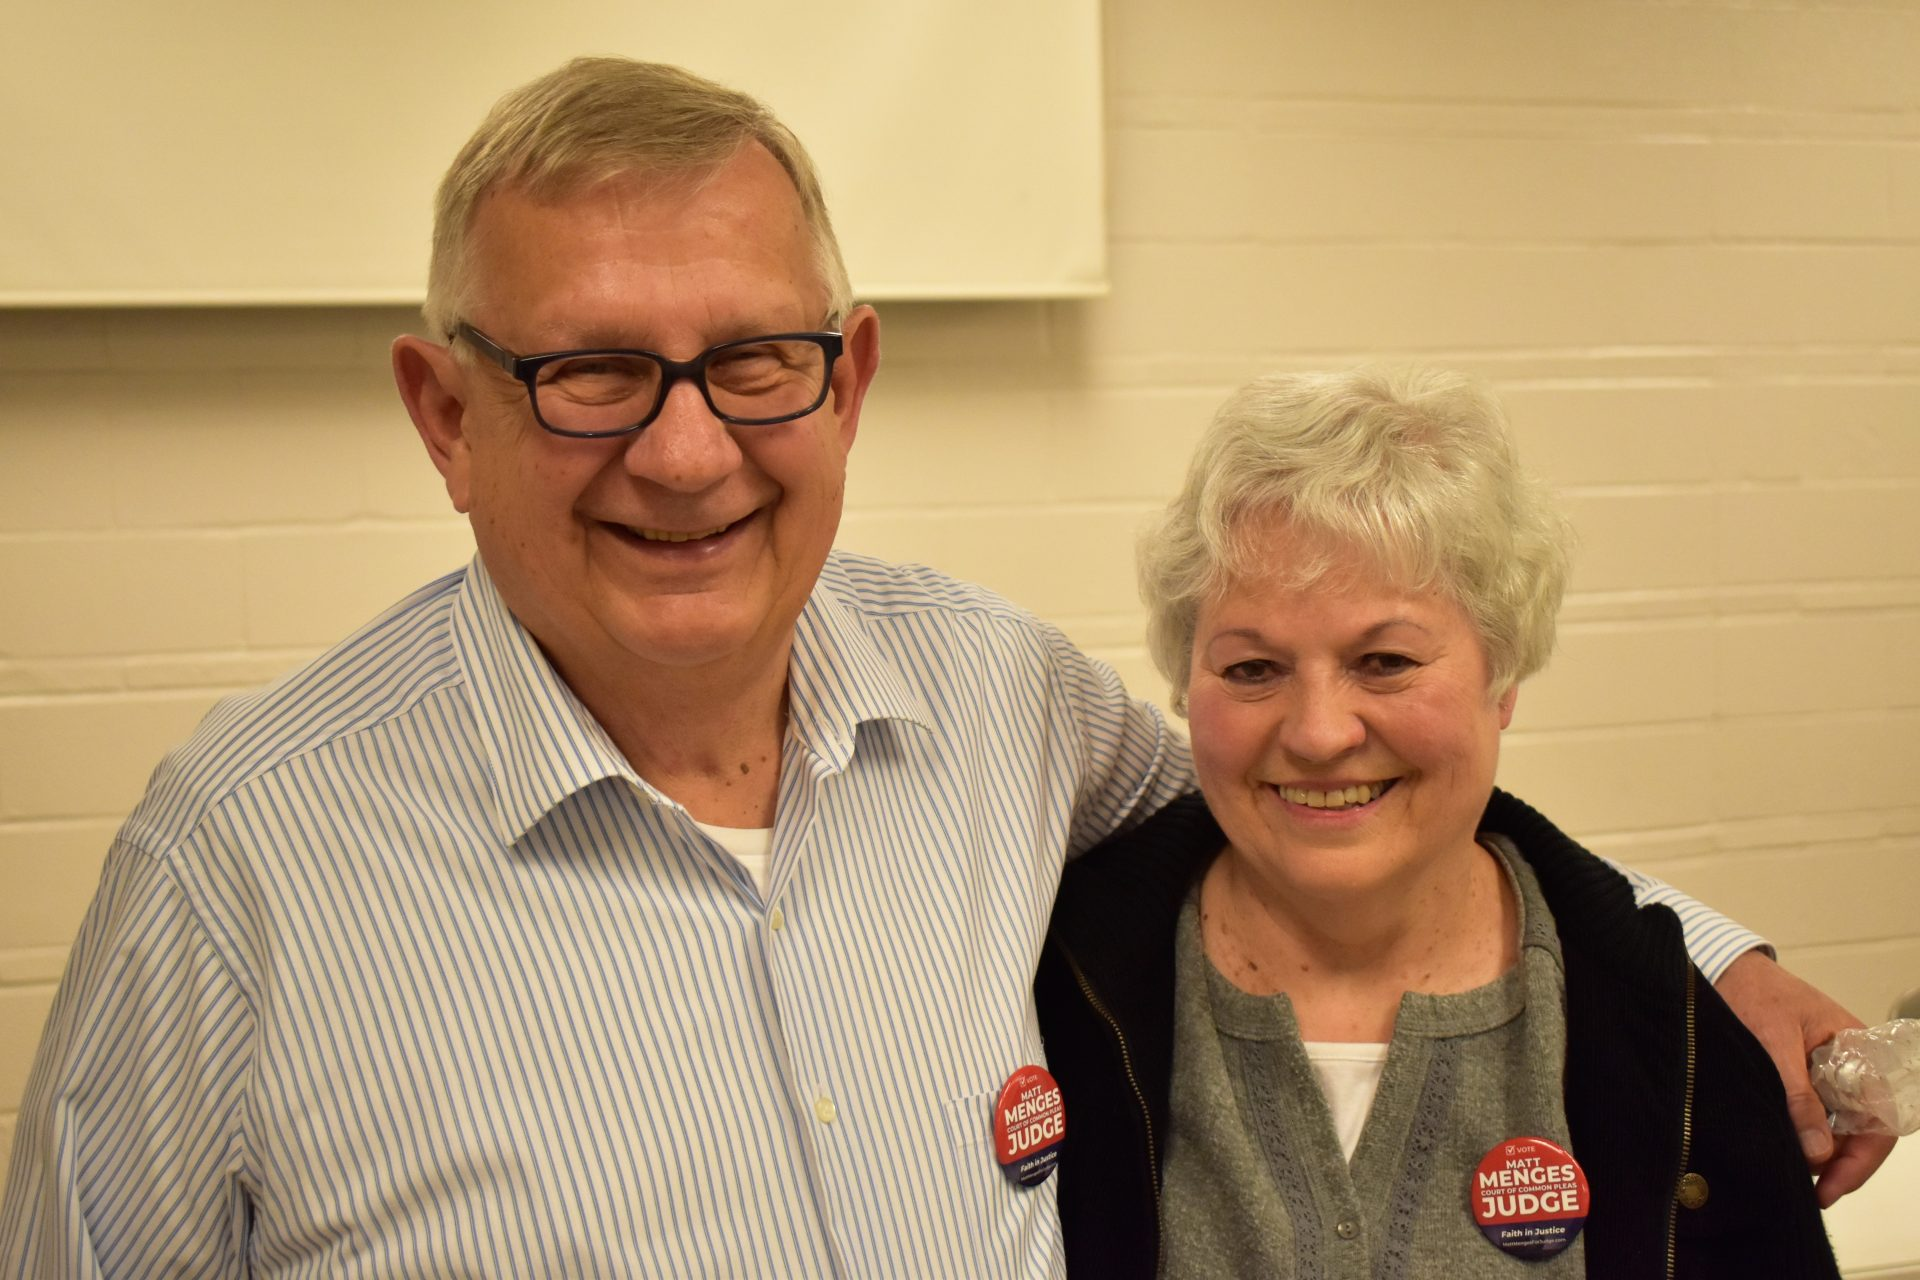 Harold Anstine and his wife, Dorrie, attended a debate hosted by the Republican Club of York County on April 29, 2019.